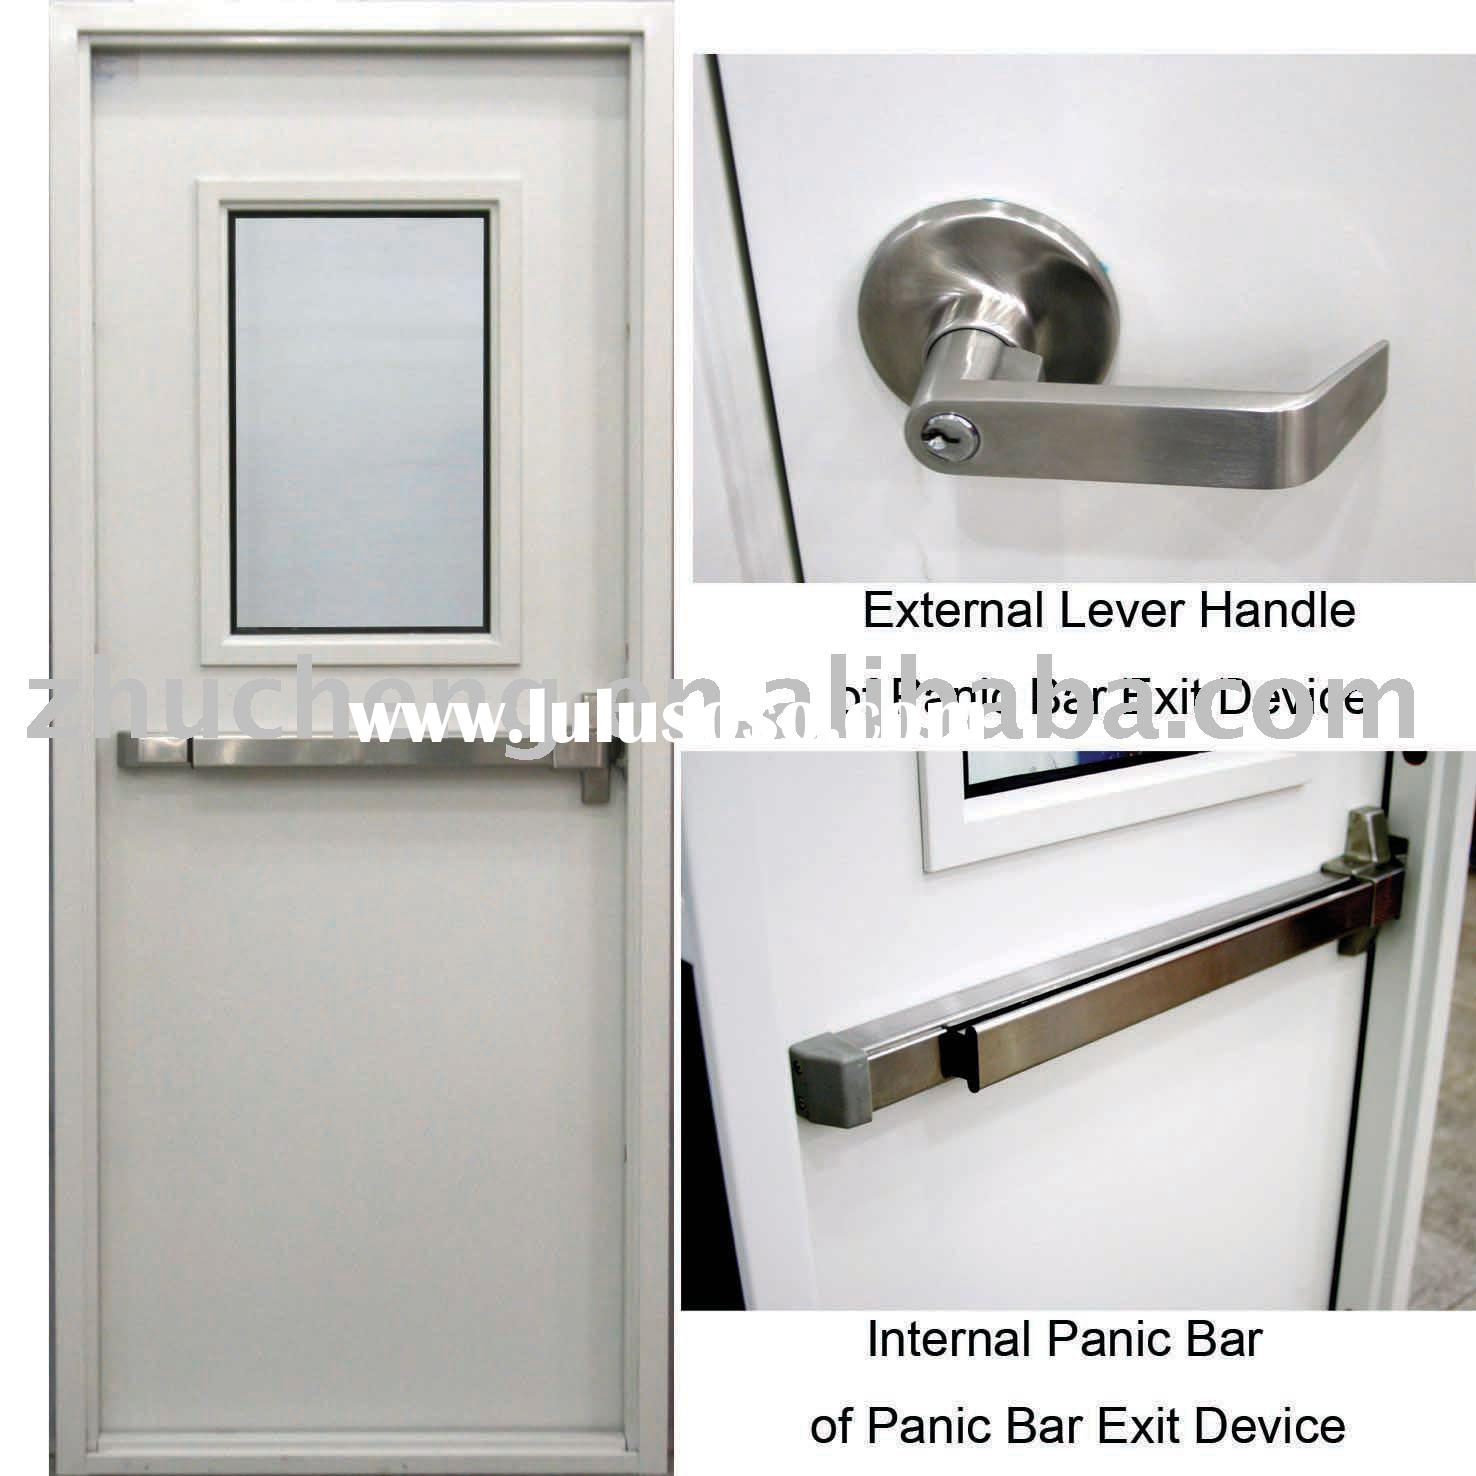 Fire Rated Door With Panic Bar Exit Device